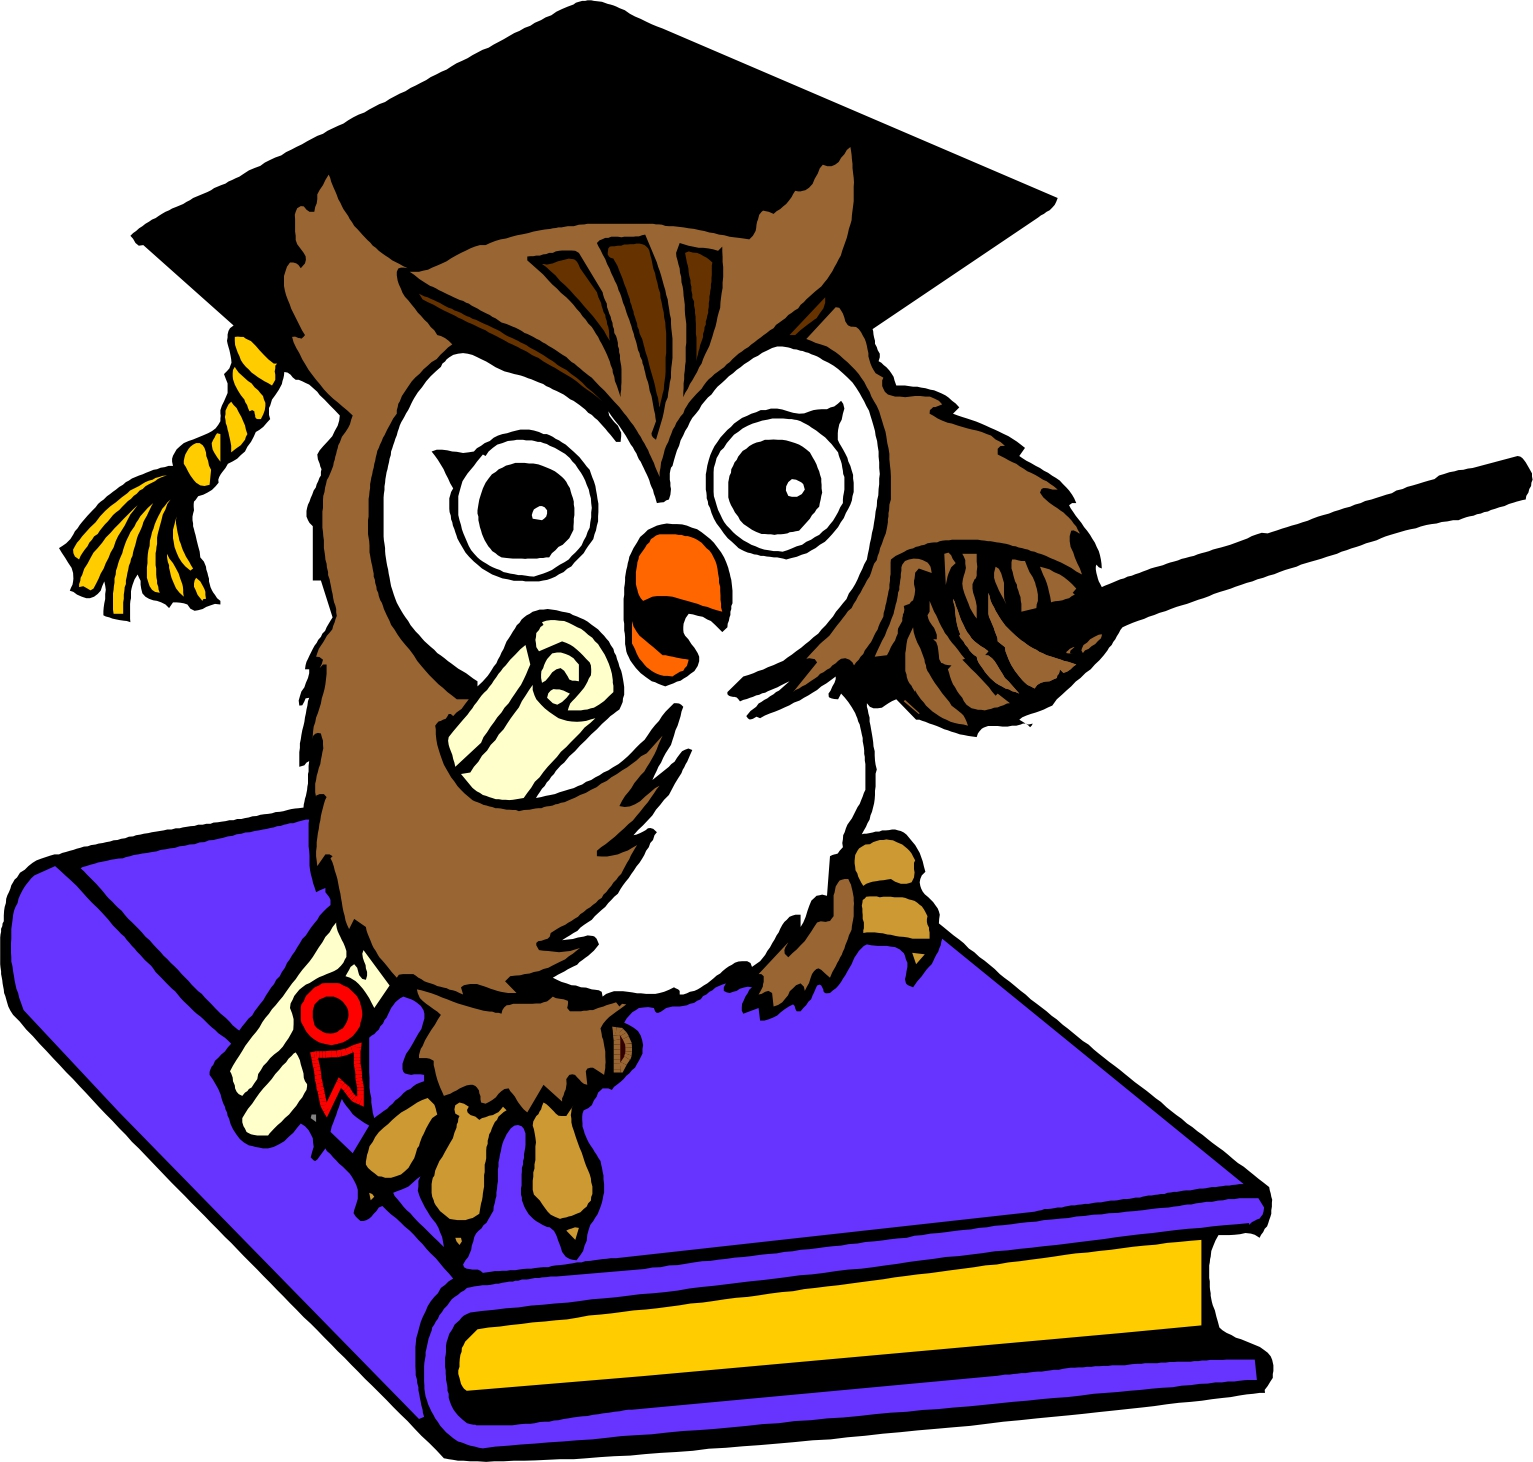 Education Cute Clipart - Clipart Kid